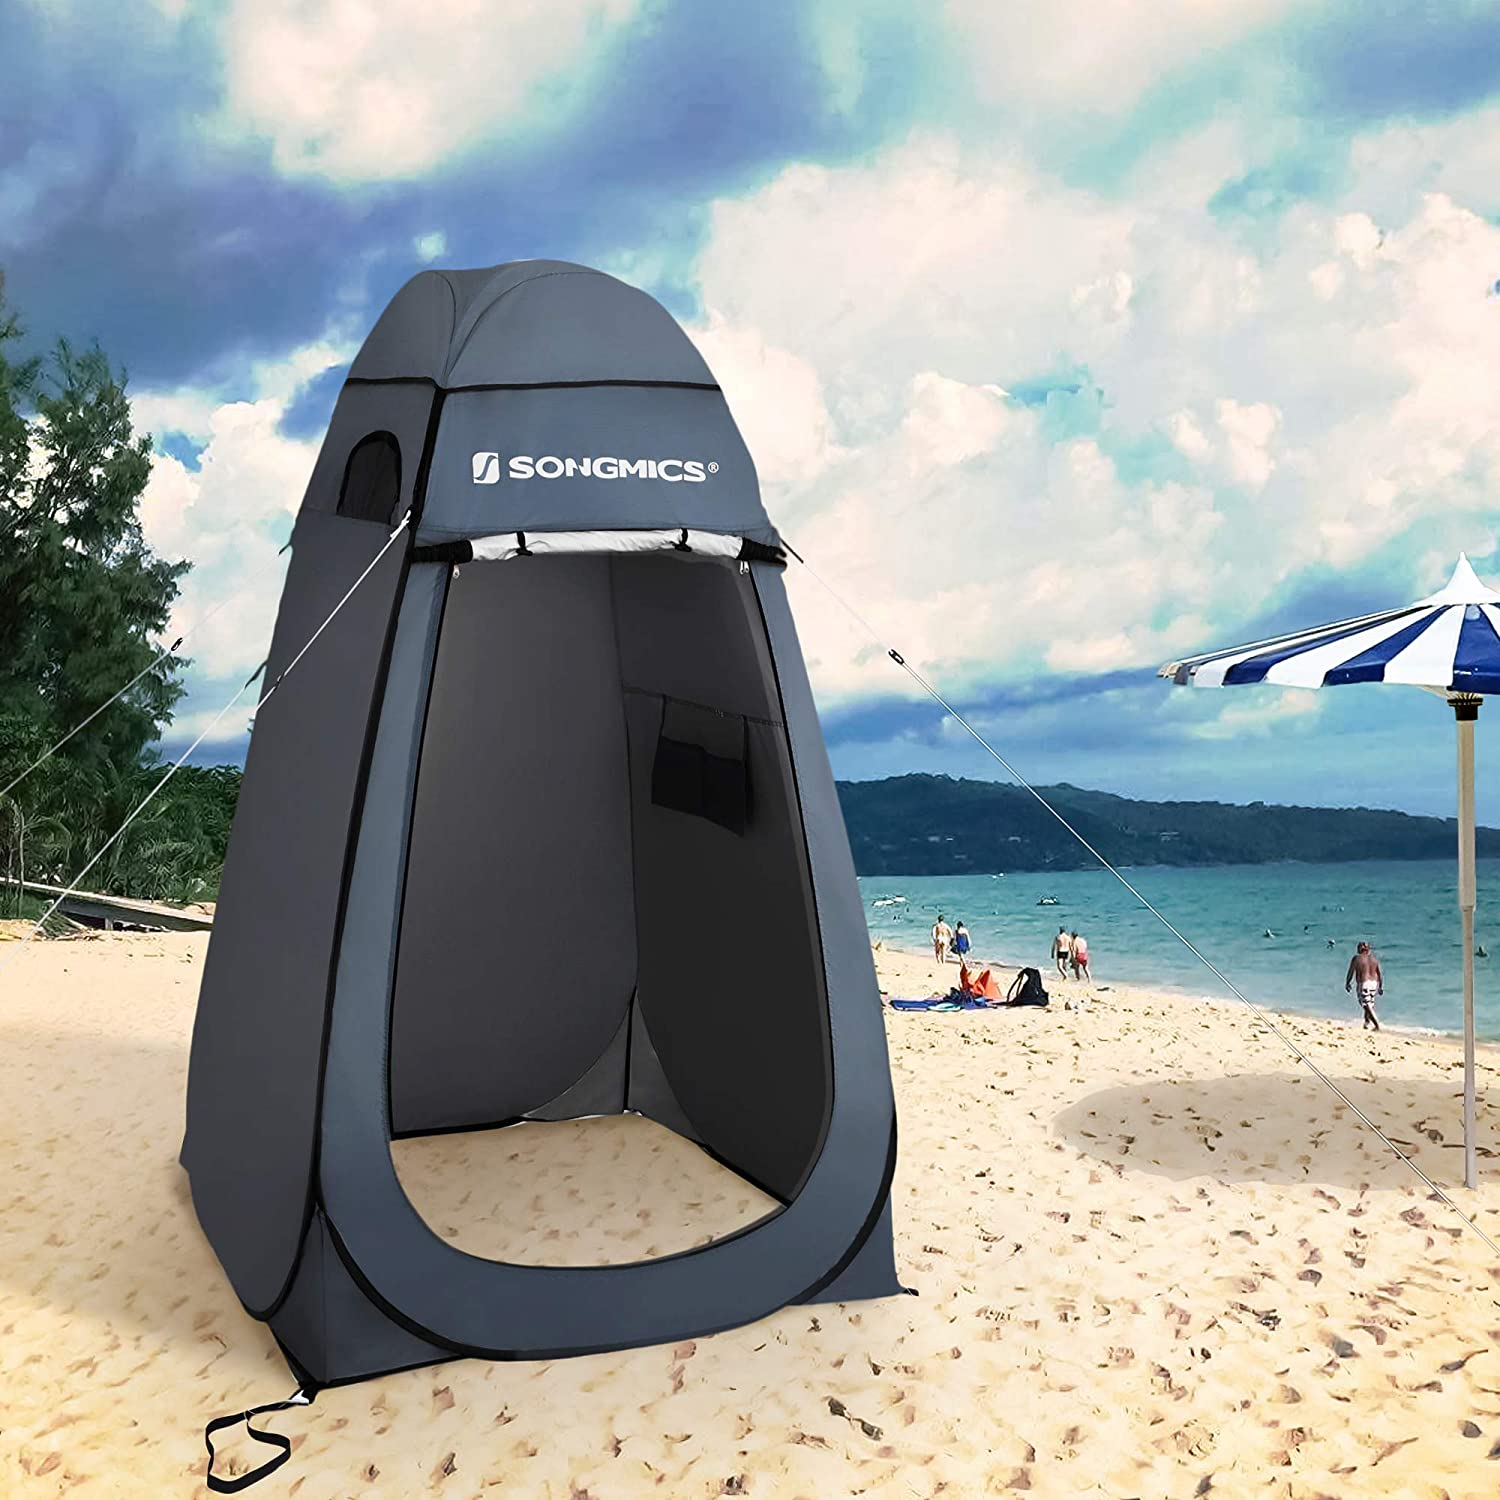 SONGMICS Portable Pop up Tent Blue GPT01BU with Zippered Carrying Bag Dressing Room Privacy Shelter for Outdoor Camping Fishing Beach Shower Toilet